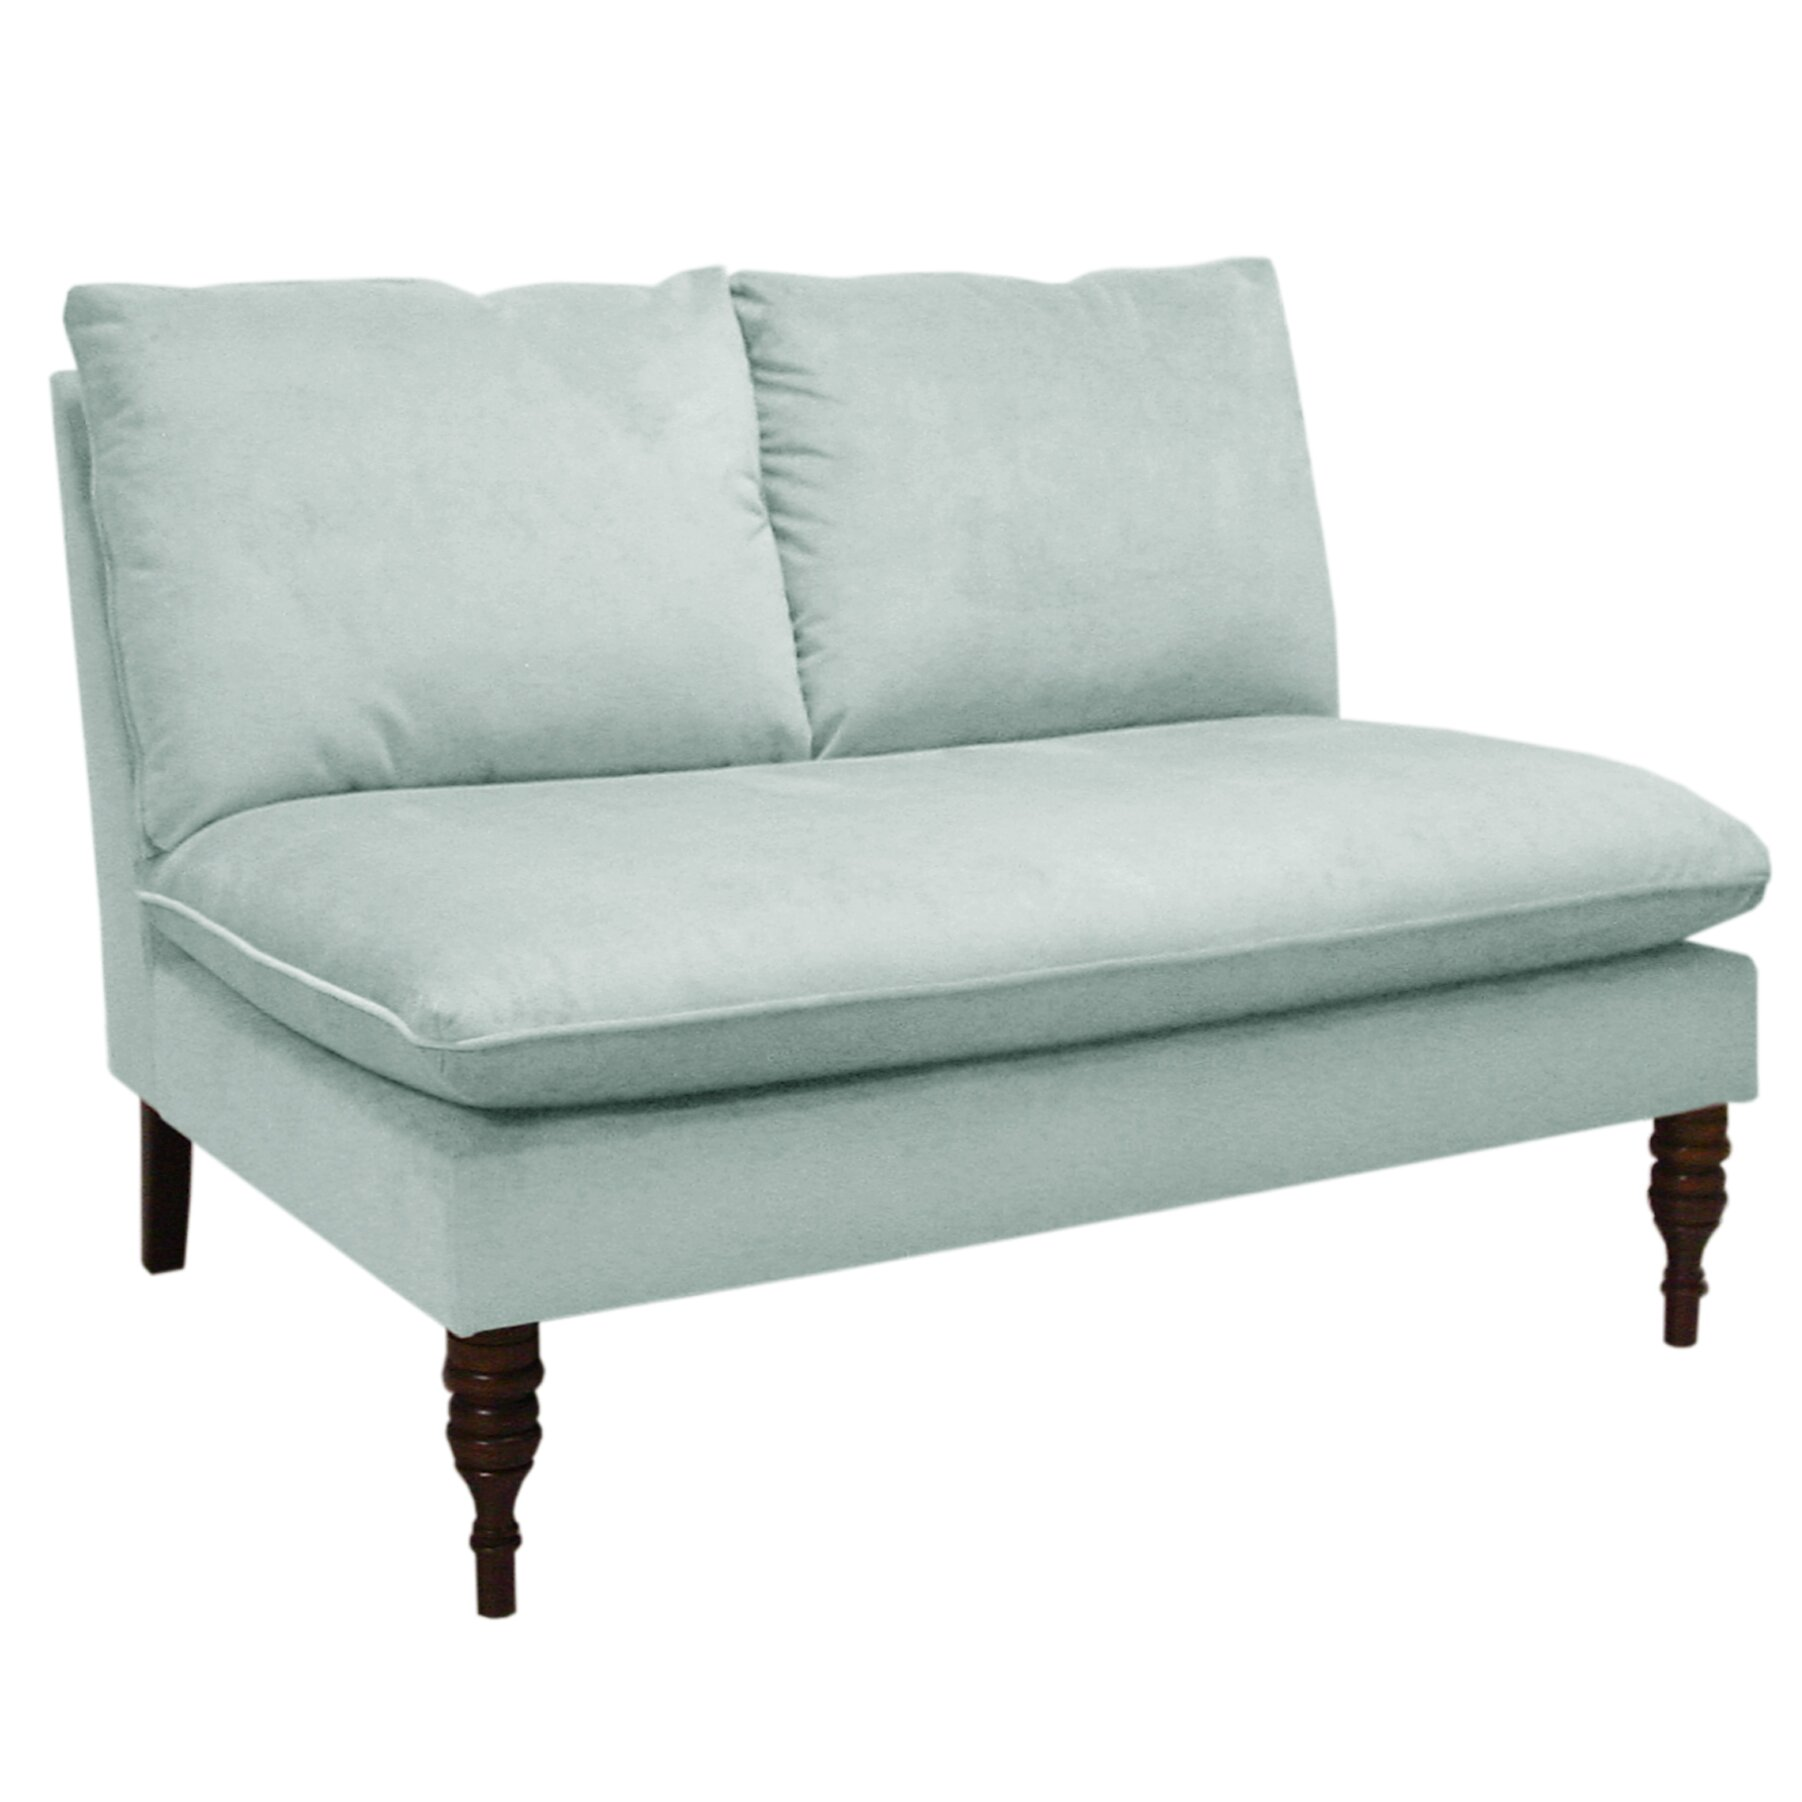 Skyline Furniture Linen Settee Reviews Wayfair